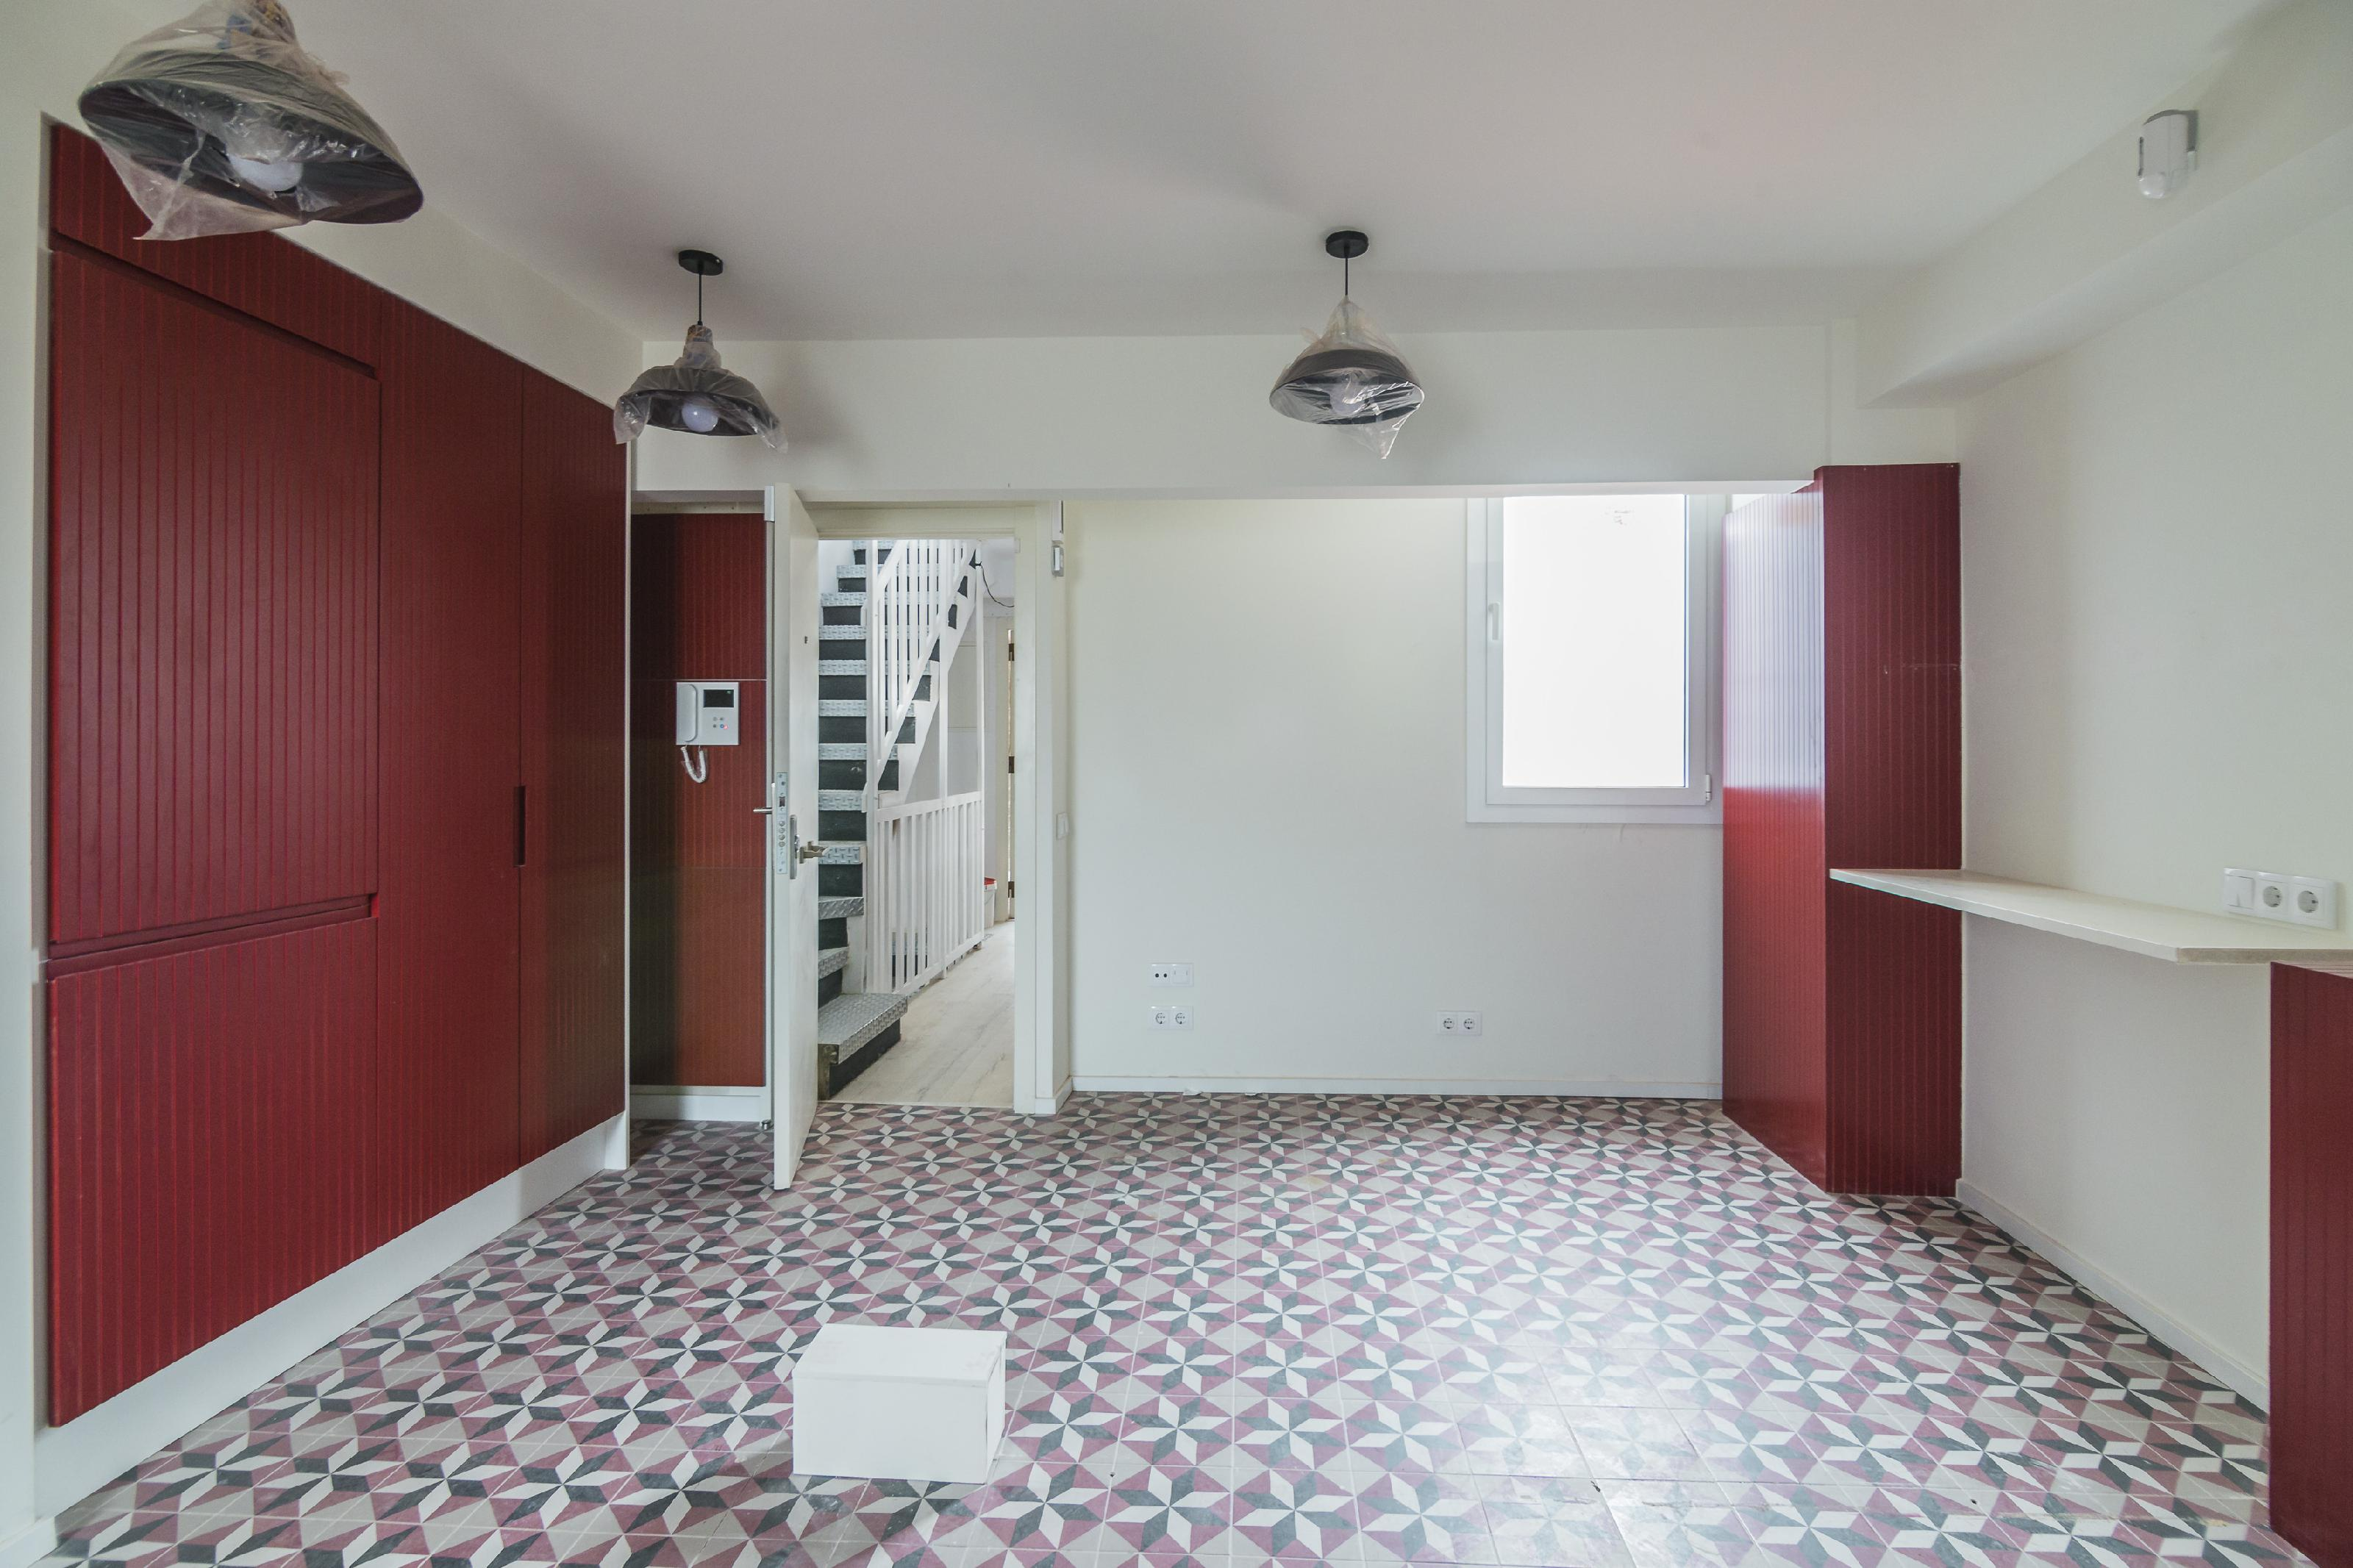 237520 Flat for sale in Ciutat Vella, St. Pere St. Caterina and La Ribera 26